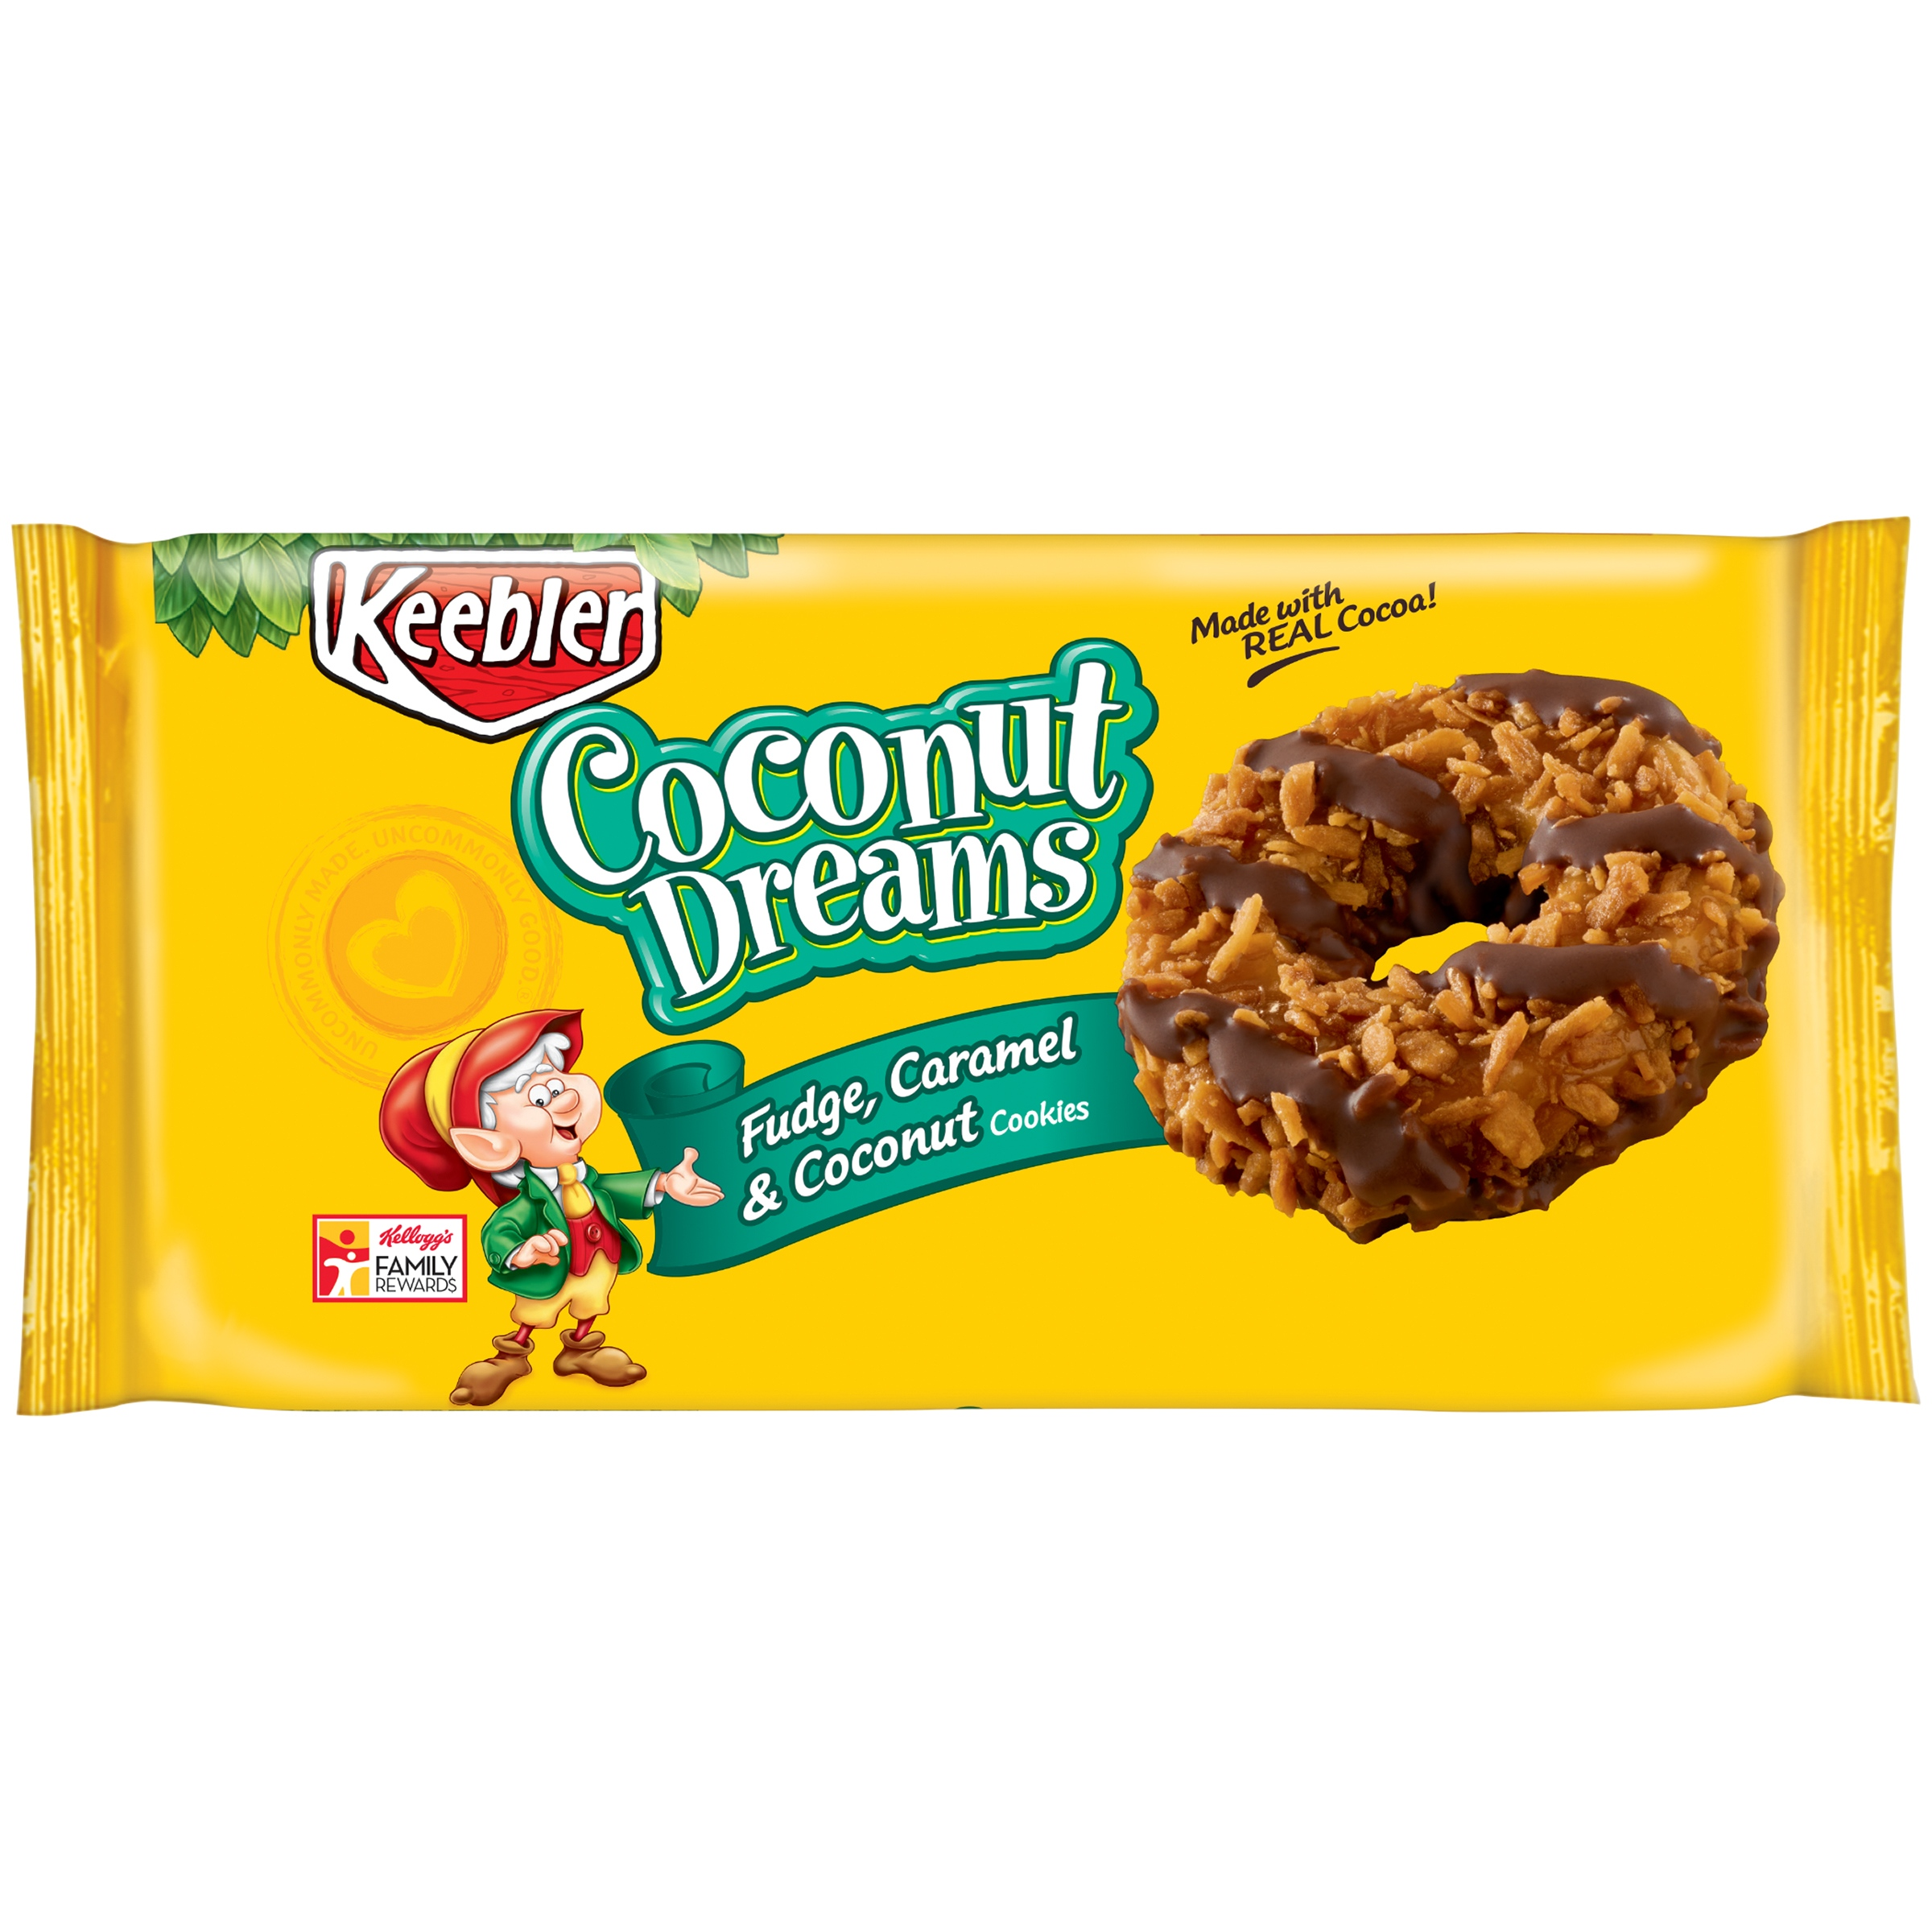 Keebler® Coconut Dreams™ Fudge Caramel & Coconut Cookies 8.5 oz. Box